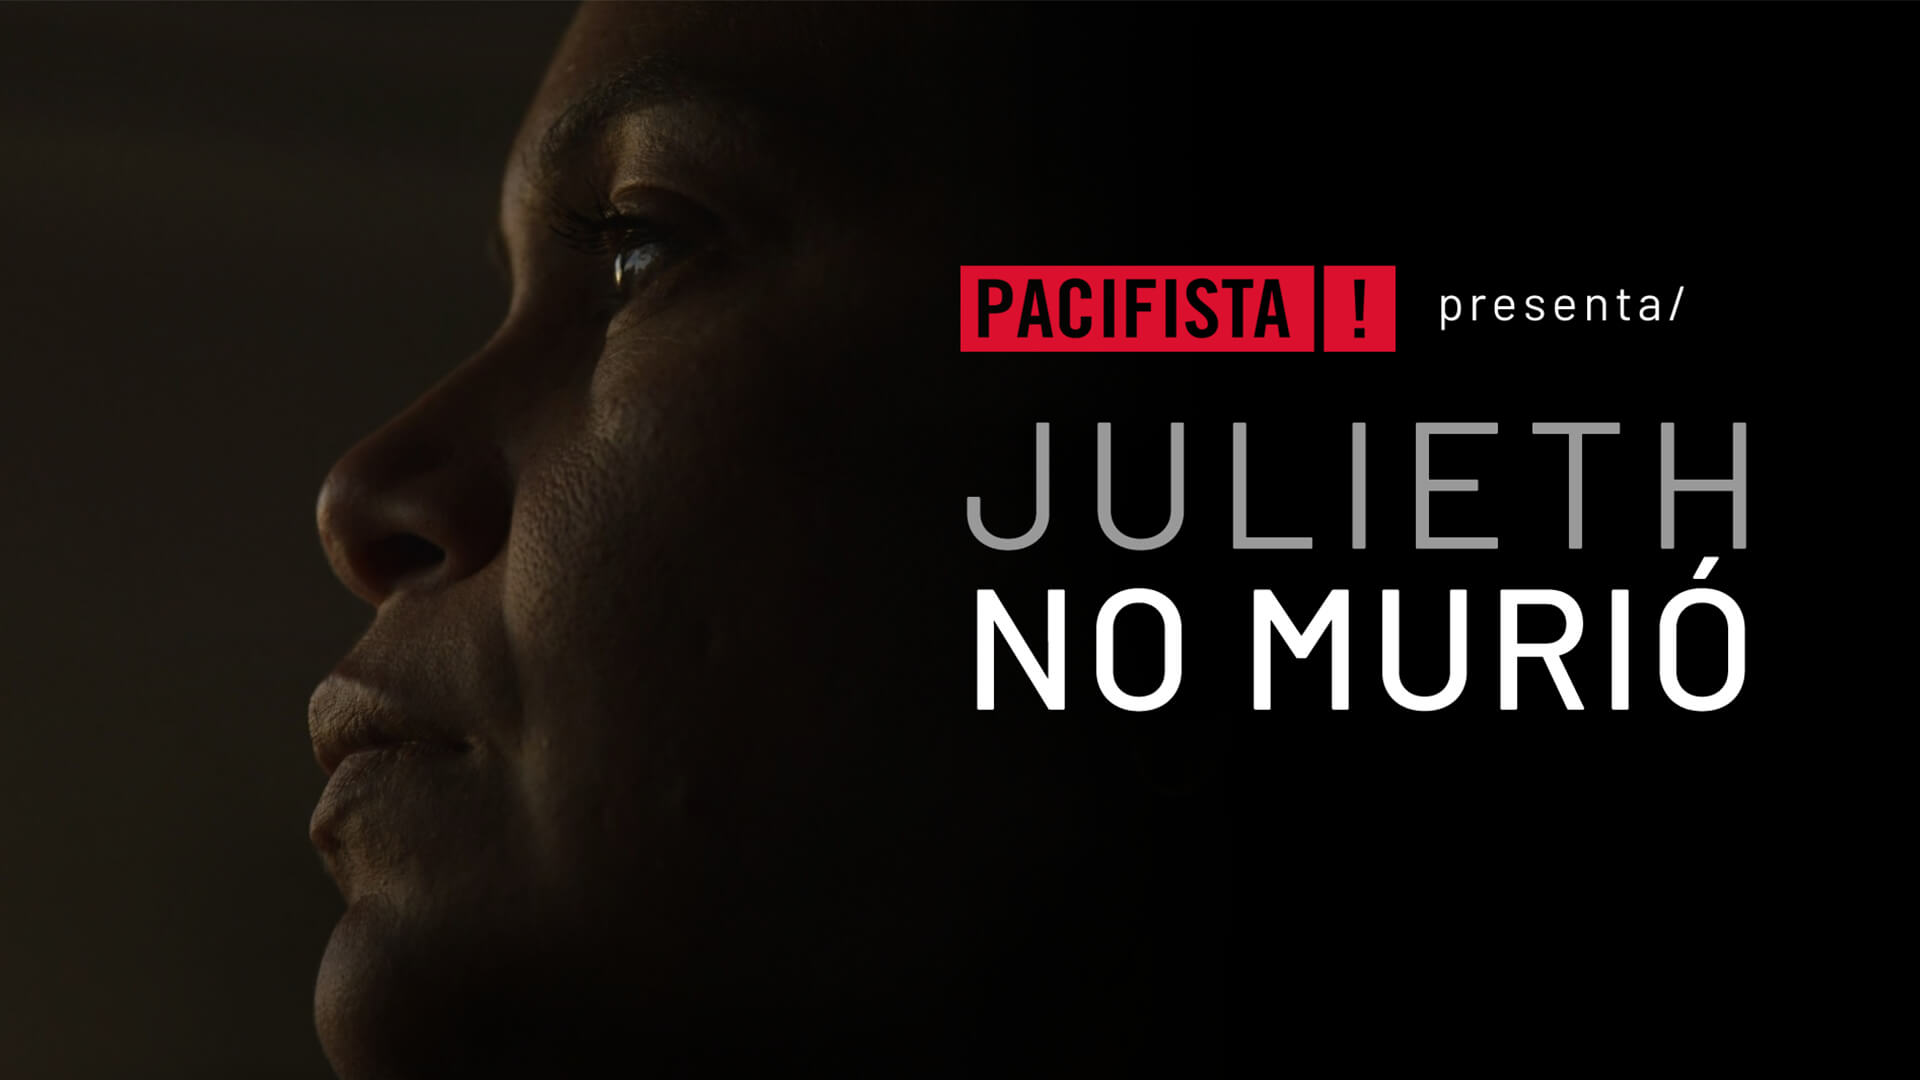 PACIFISTA! presenta: 'Julieth no murió'